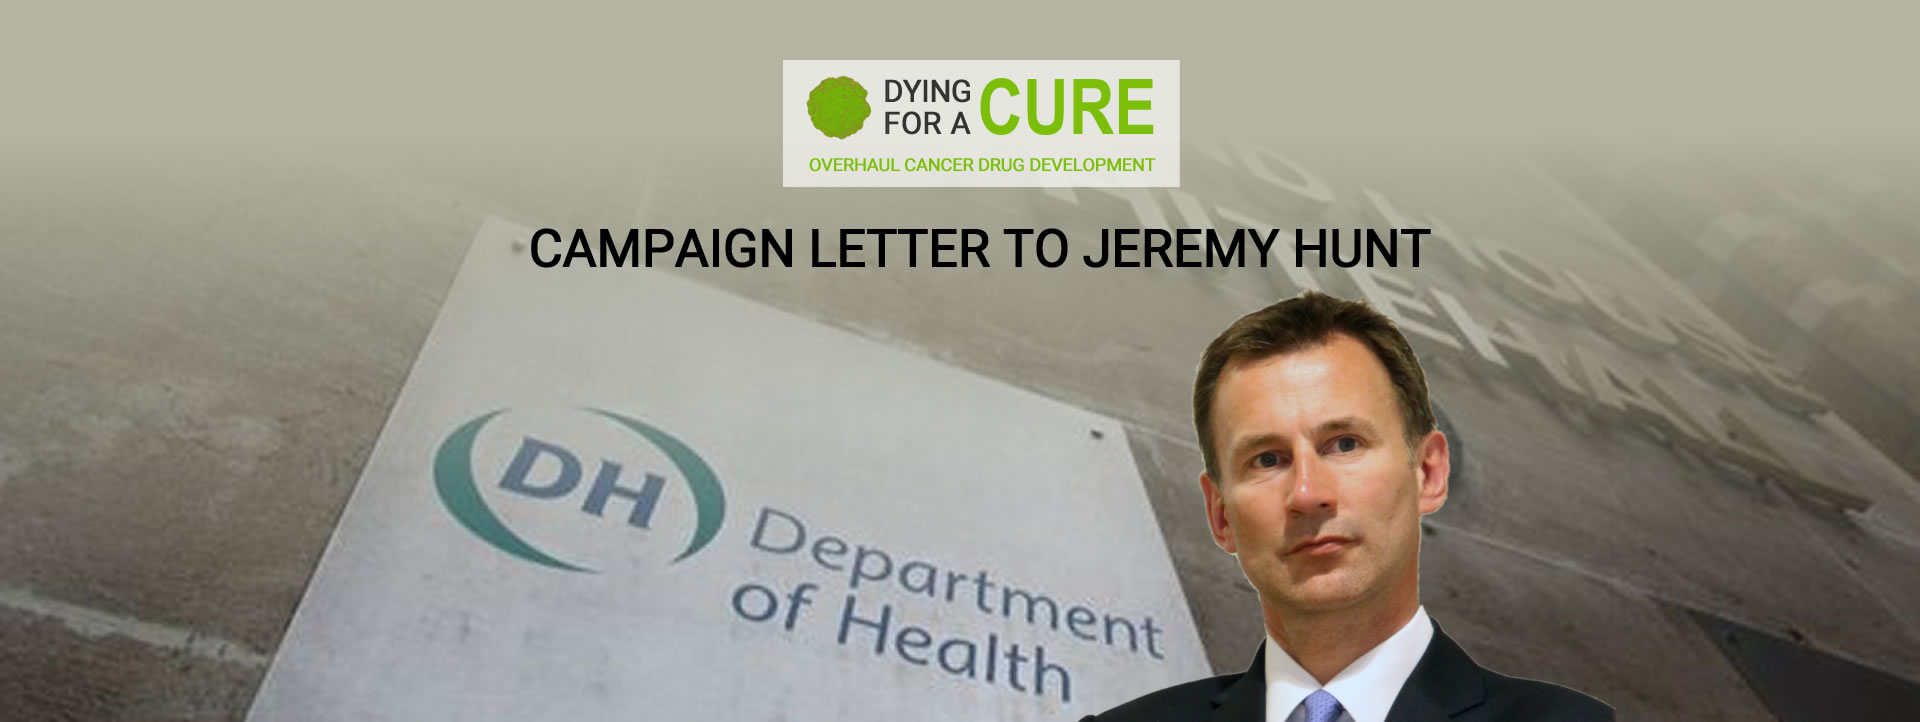 Campaign Letter To Jeremy Hunt